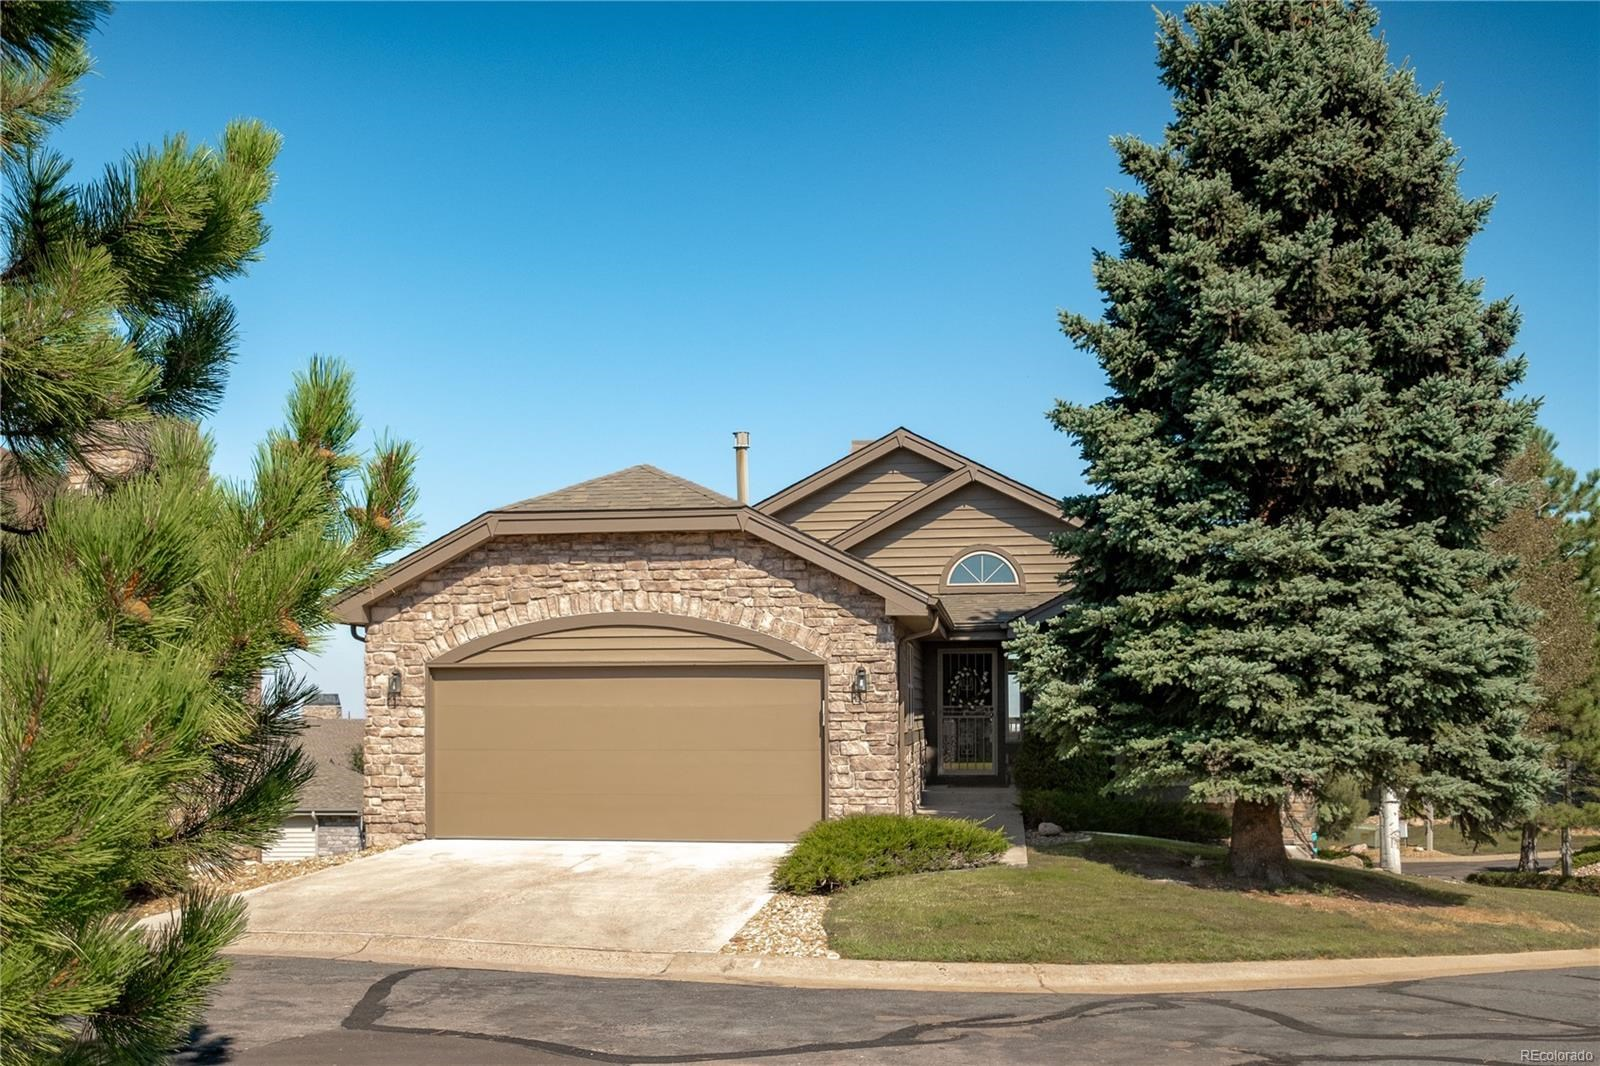 MLS# 9162651 - 1 - 51 Toppler Court, Castle Pines, CO 80108